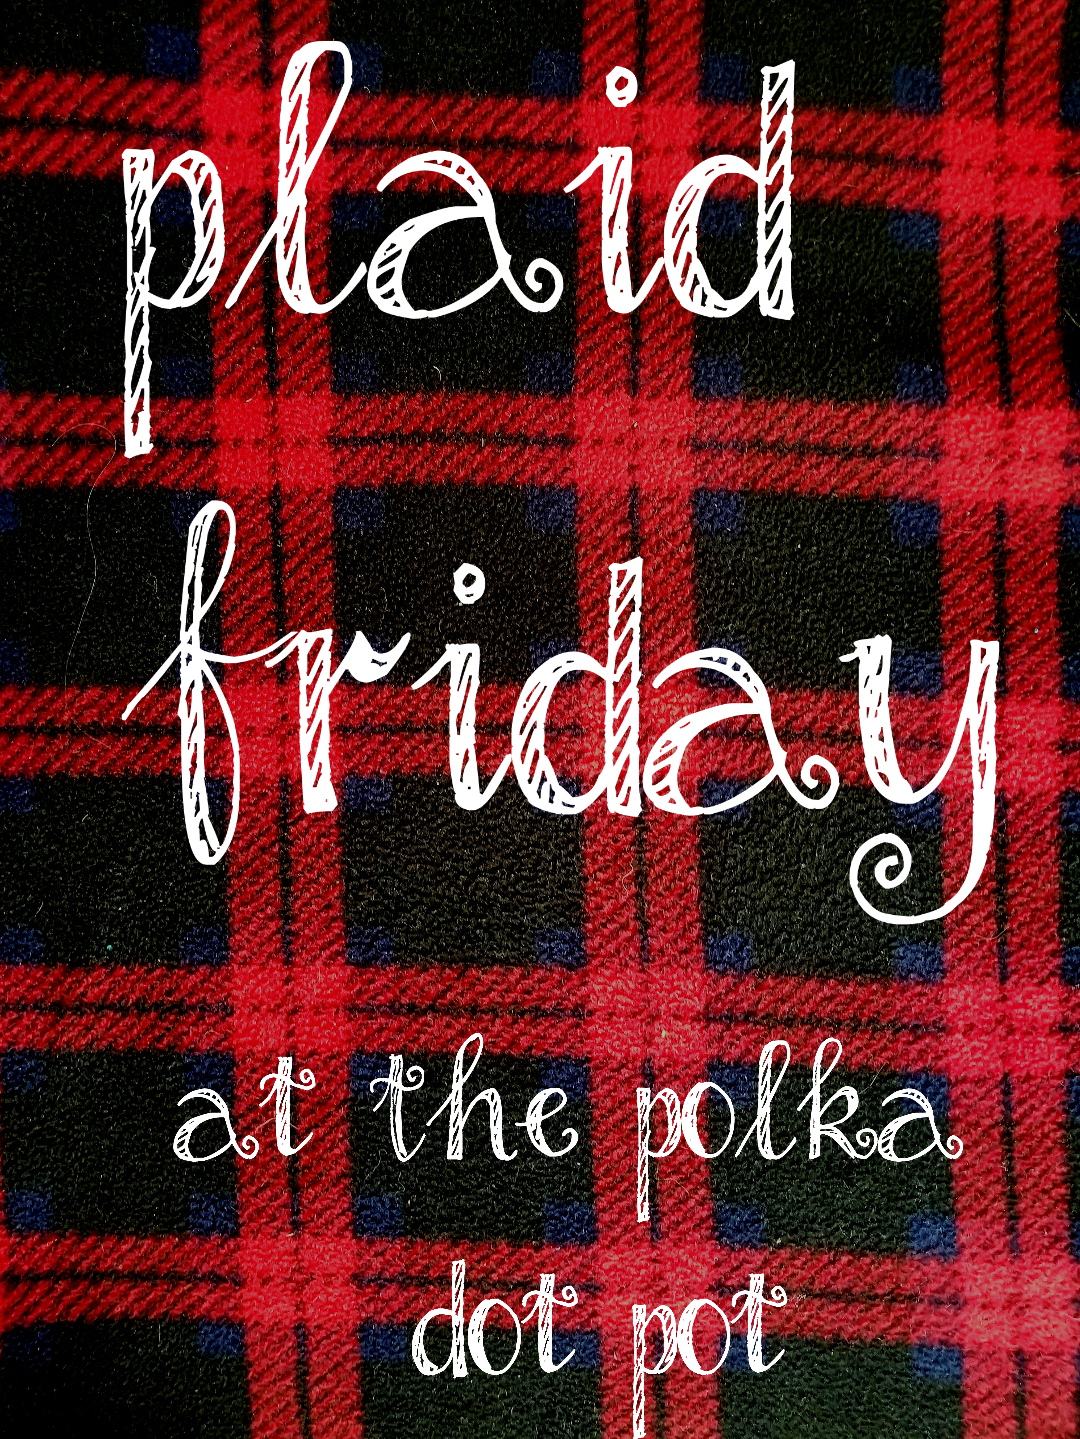 Plaid Friday pic. Mine